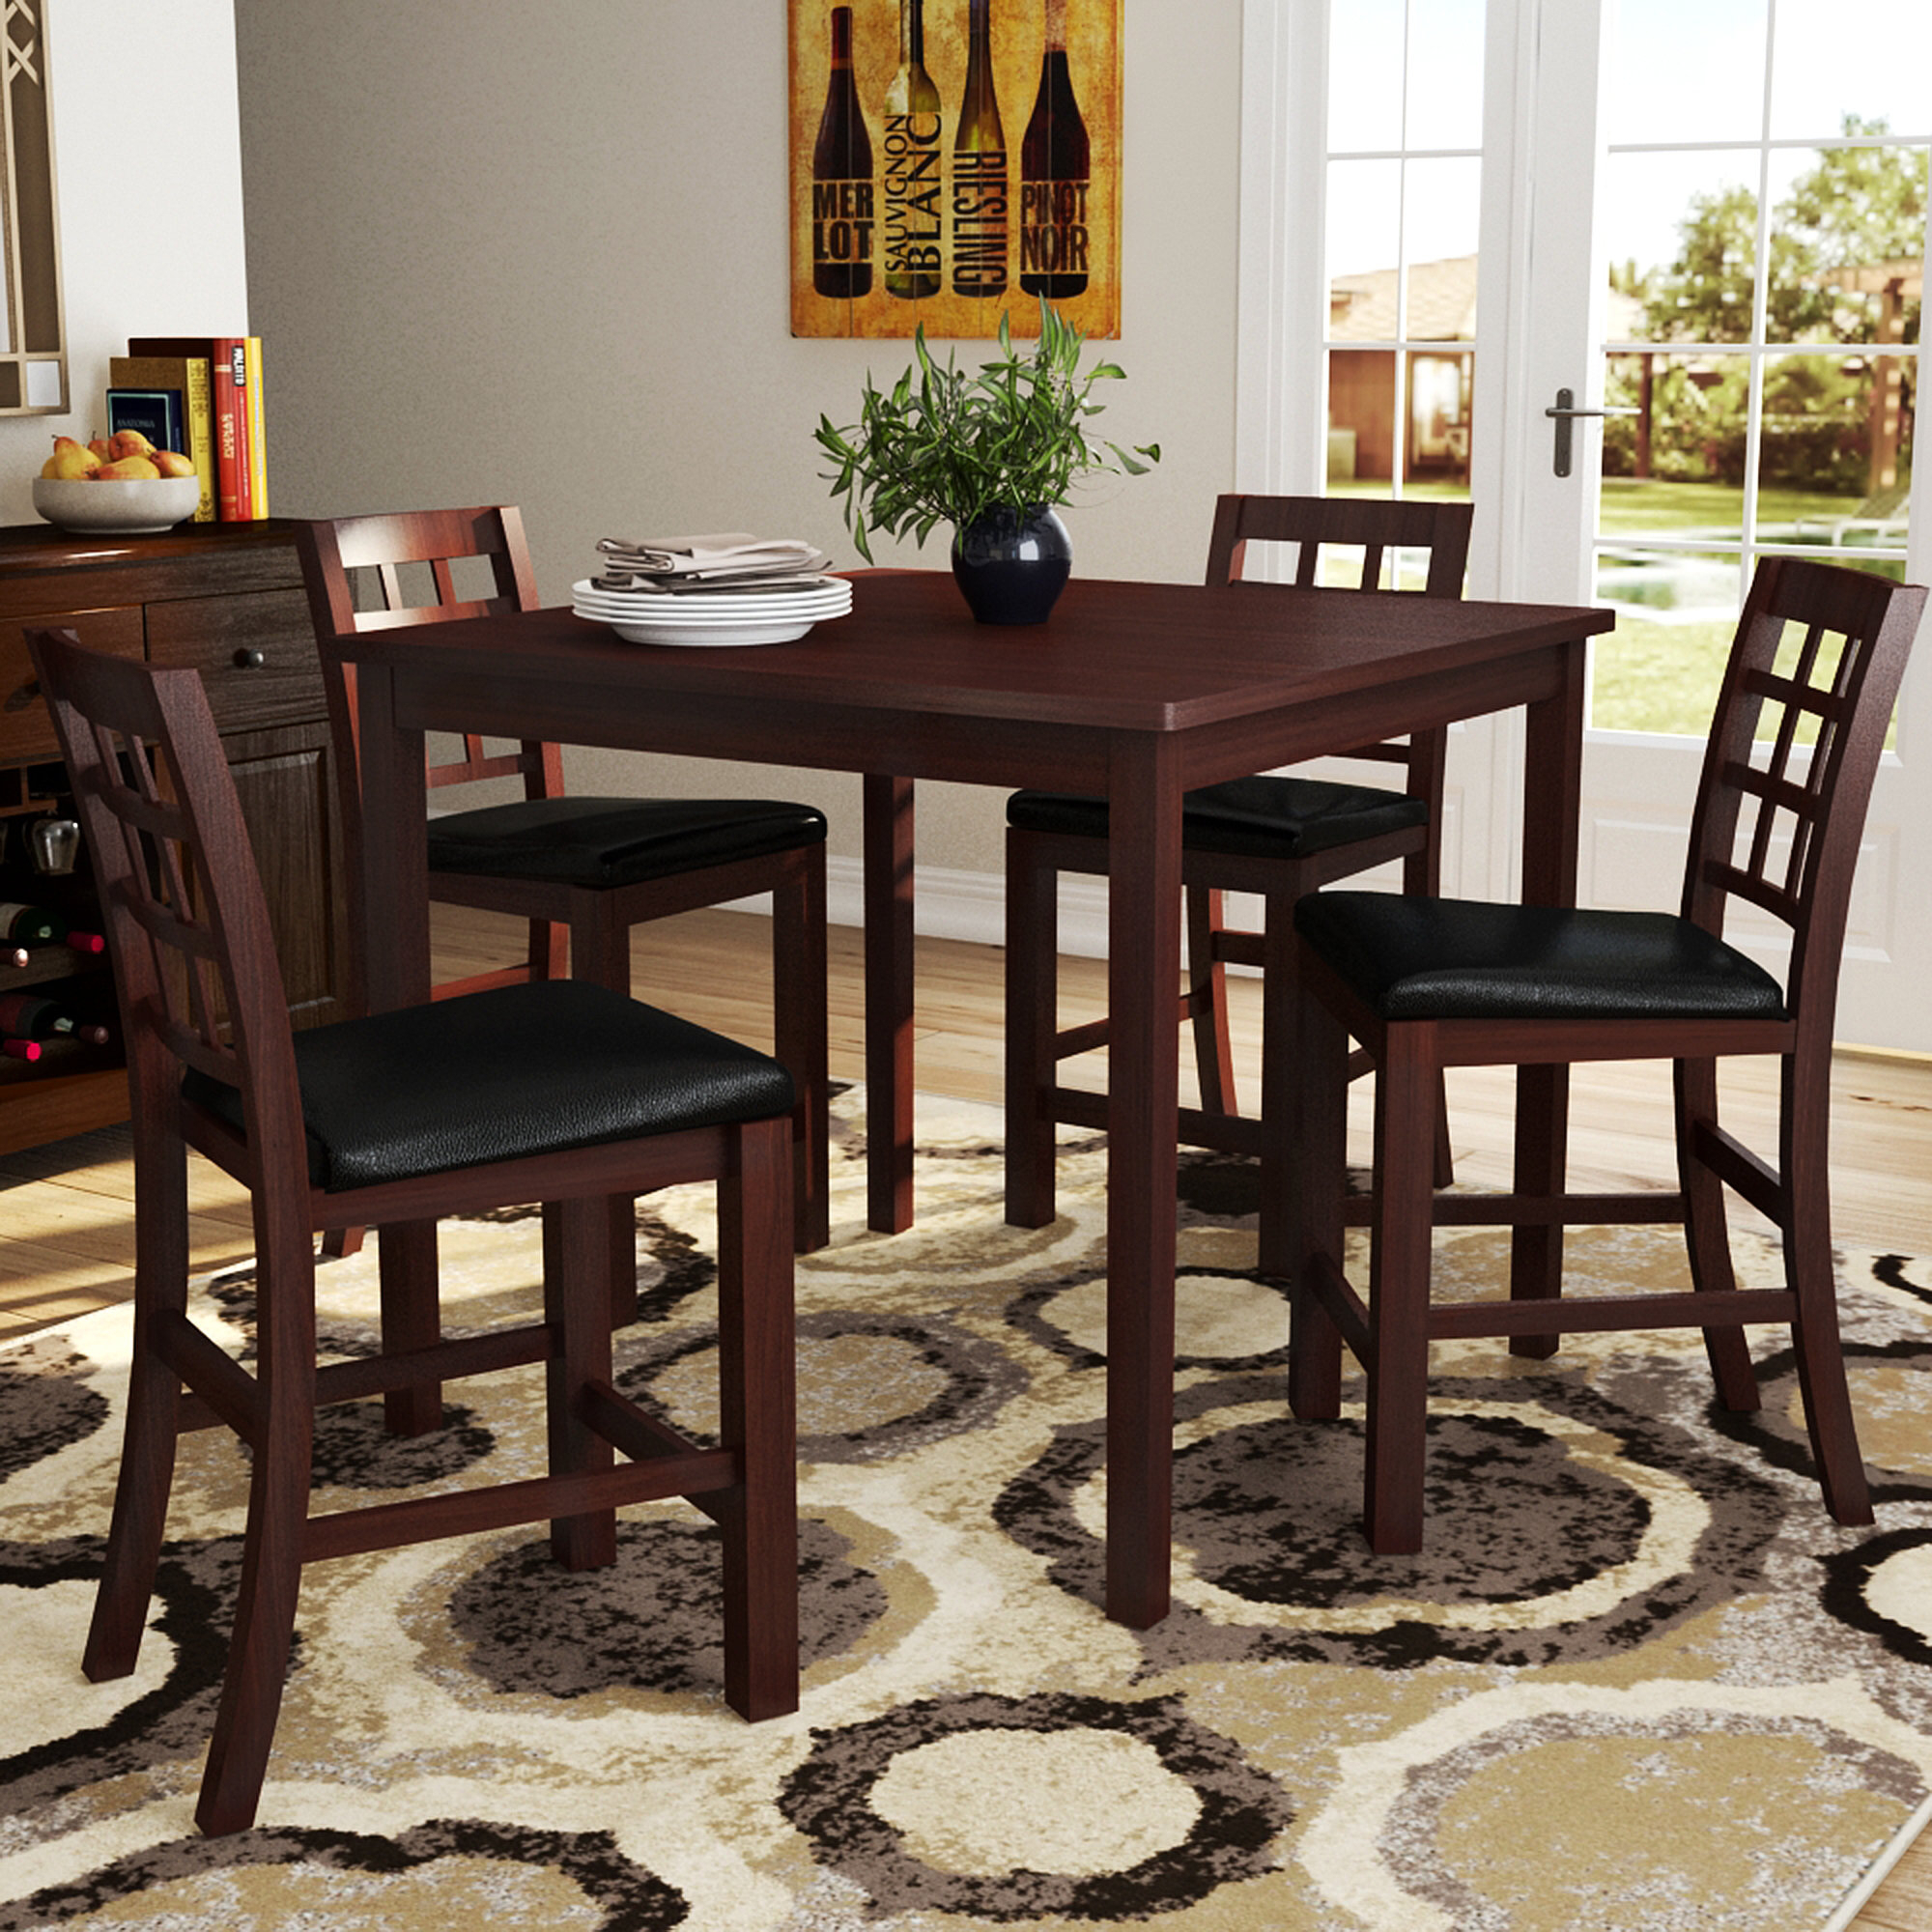 Biggs 5 Piece Counter Height Solid Wood Dining Sets (set Of 5) Inside Most Recently Released Red Barrel Studio Plymouth 5 Piece Counter Height Dining Set (View 6 of 20)